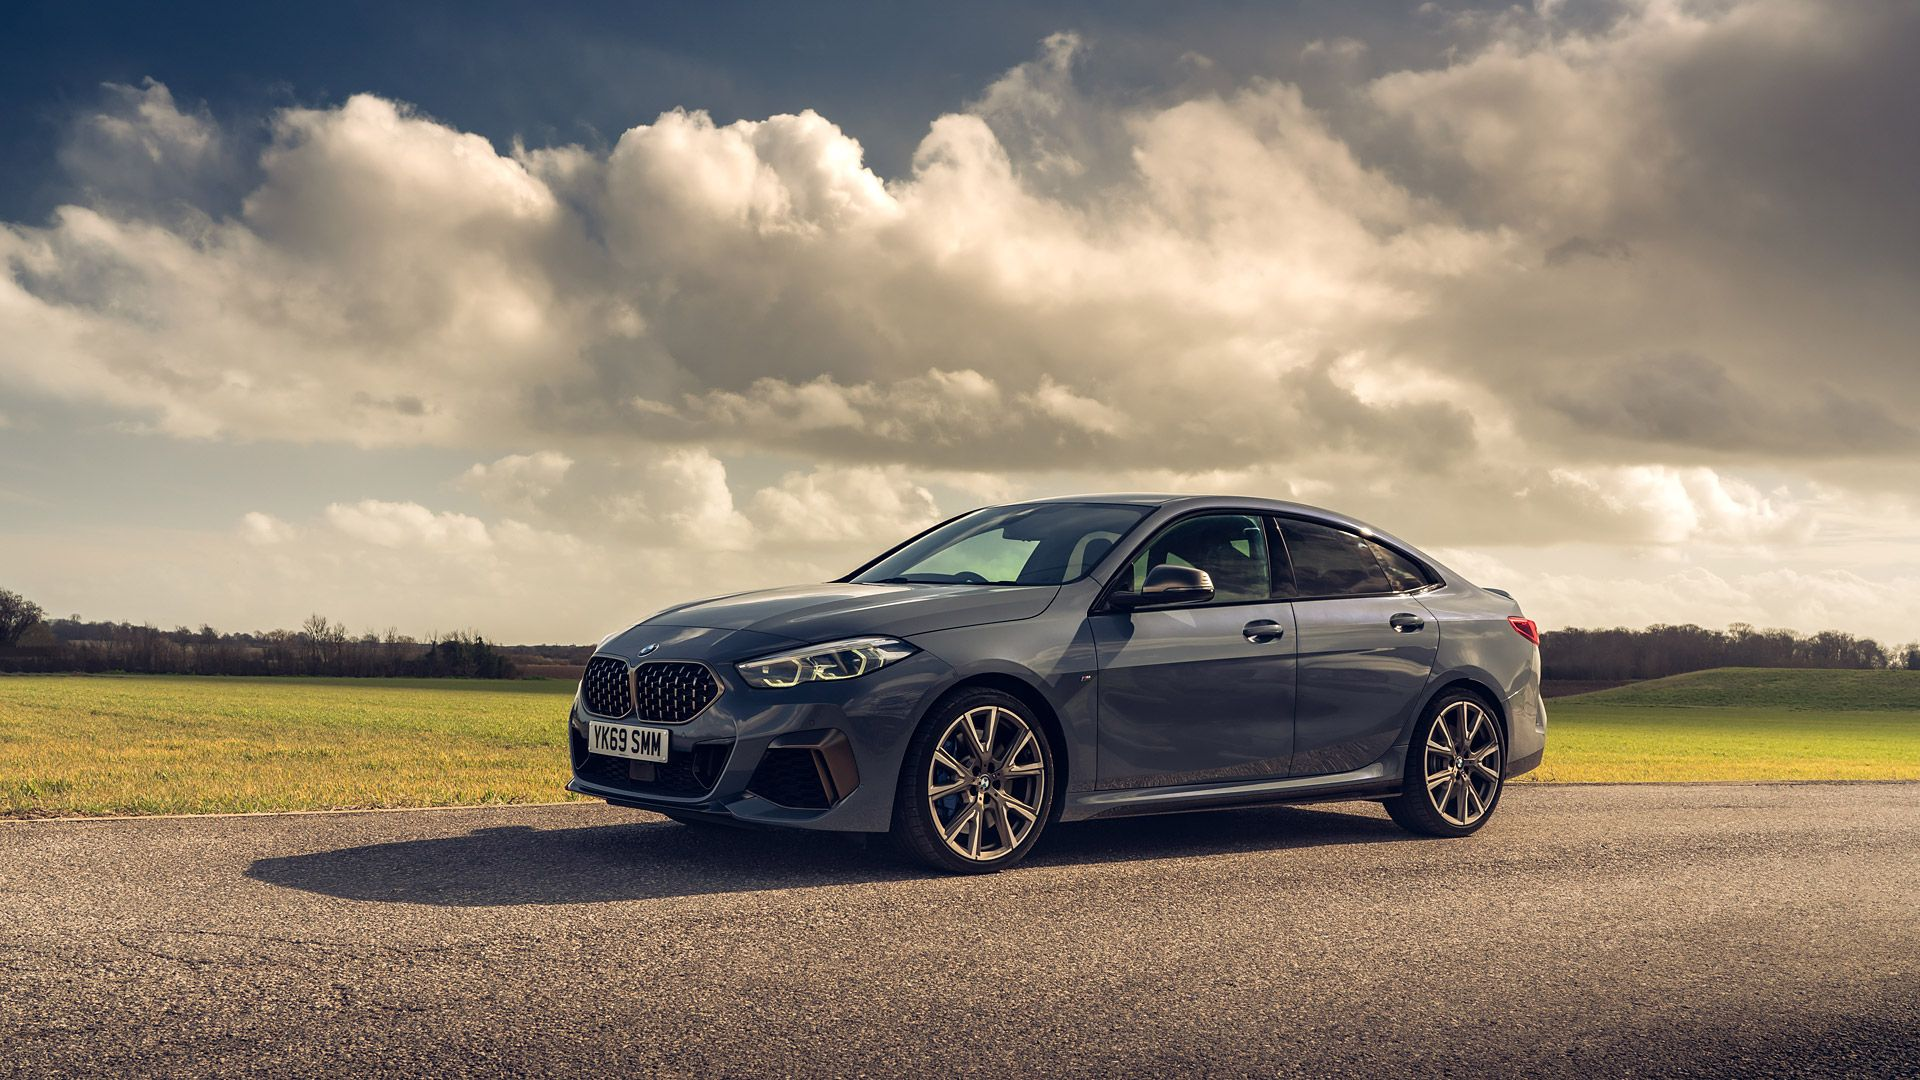 2020 Bmw M235i Gran Coupe Wallpapers Wsupercars Bmw Gran Coupe Coupe